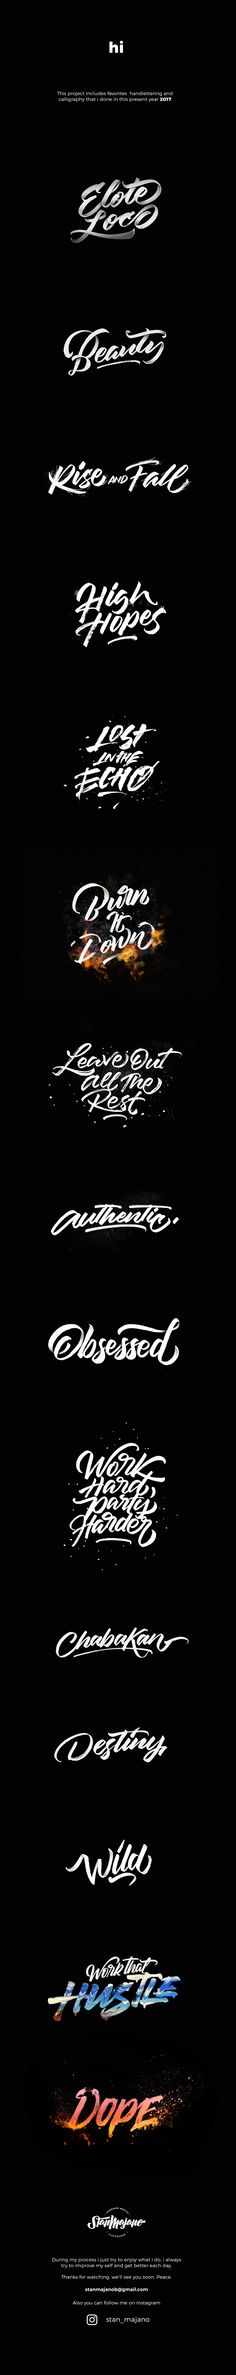 Calligraphy and Lettering 2017 on Behance